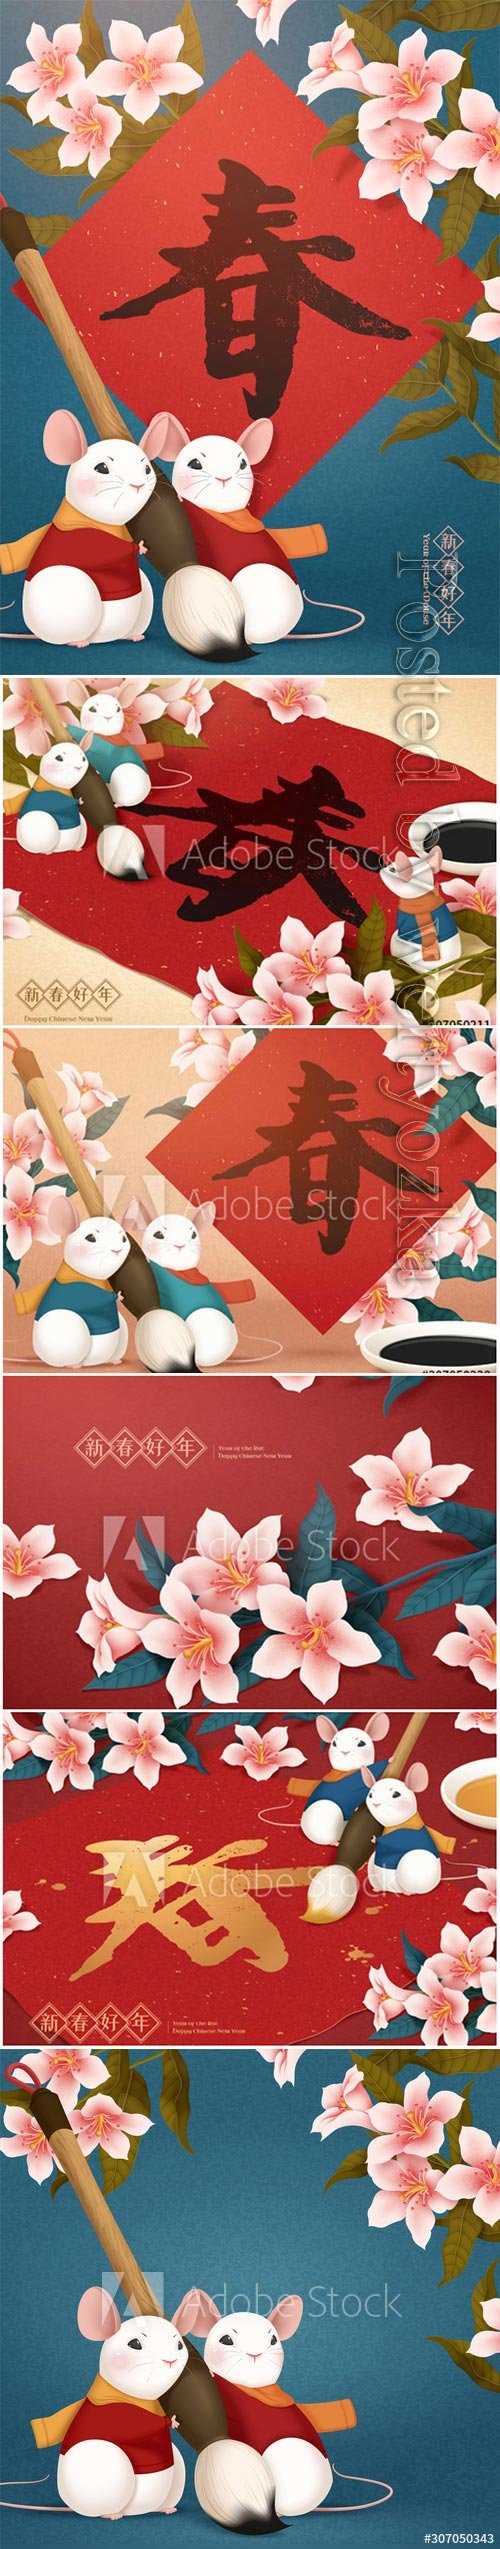 Cute mouse holding paint brush, New Year vector design